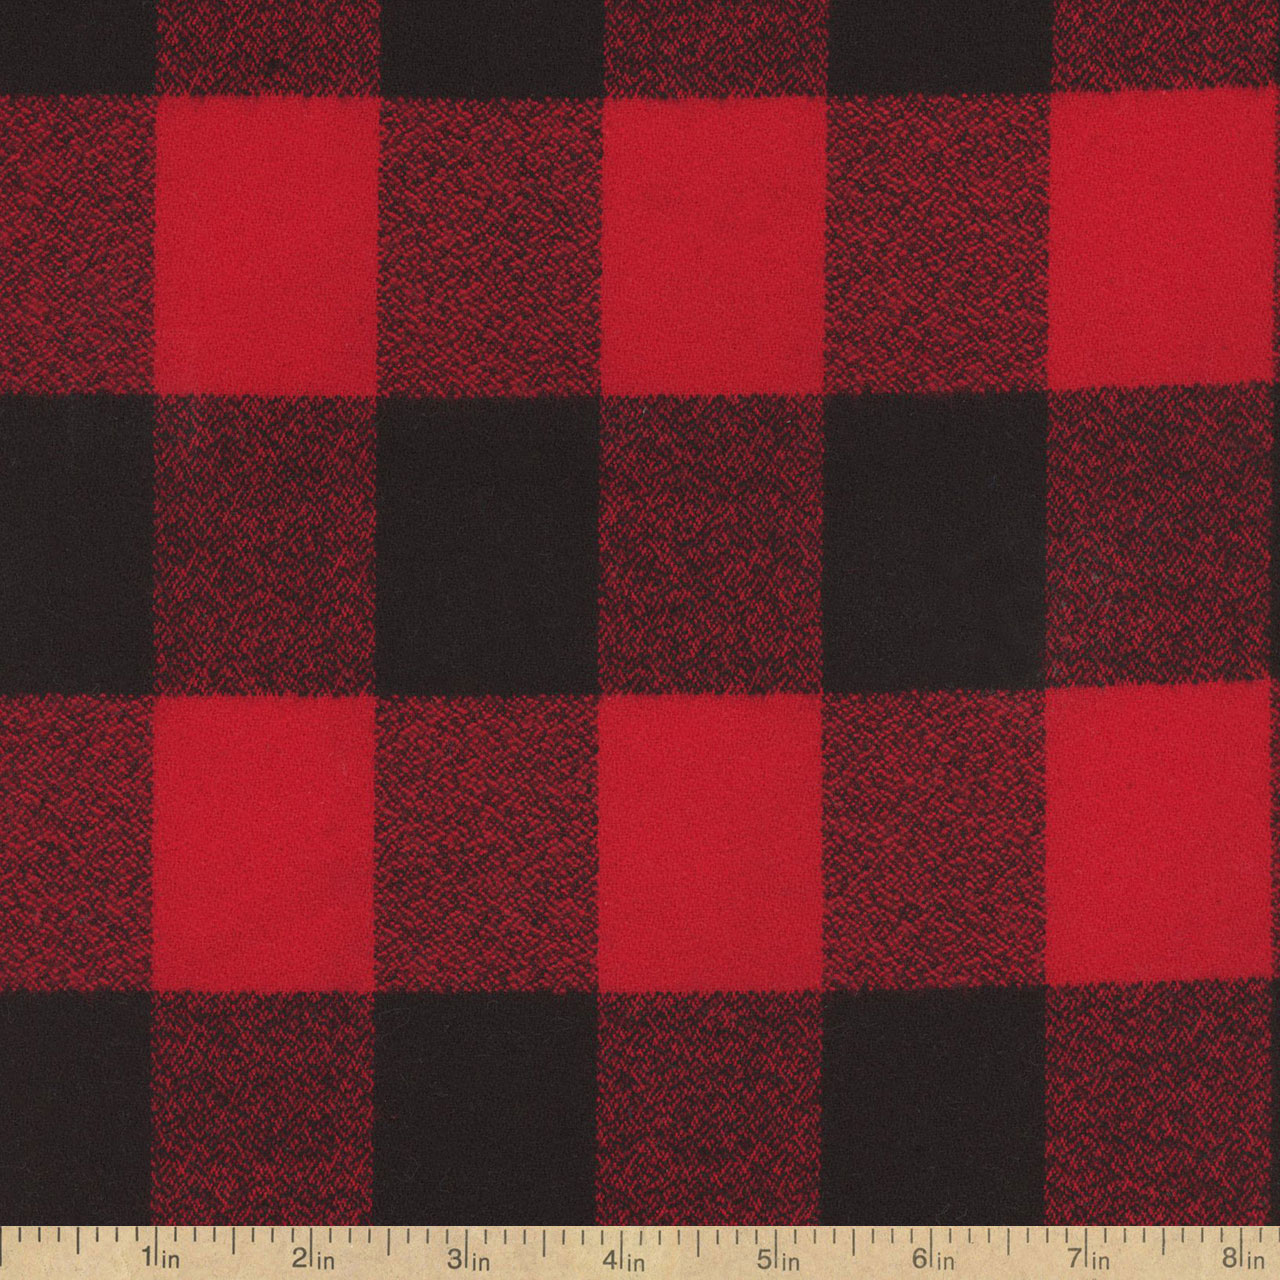 red and black plaid fabric operation18 truckers social media network cdl driving jobs. Black Bedroom Furniture Sets. Home Design Ideas